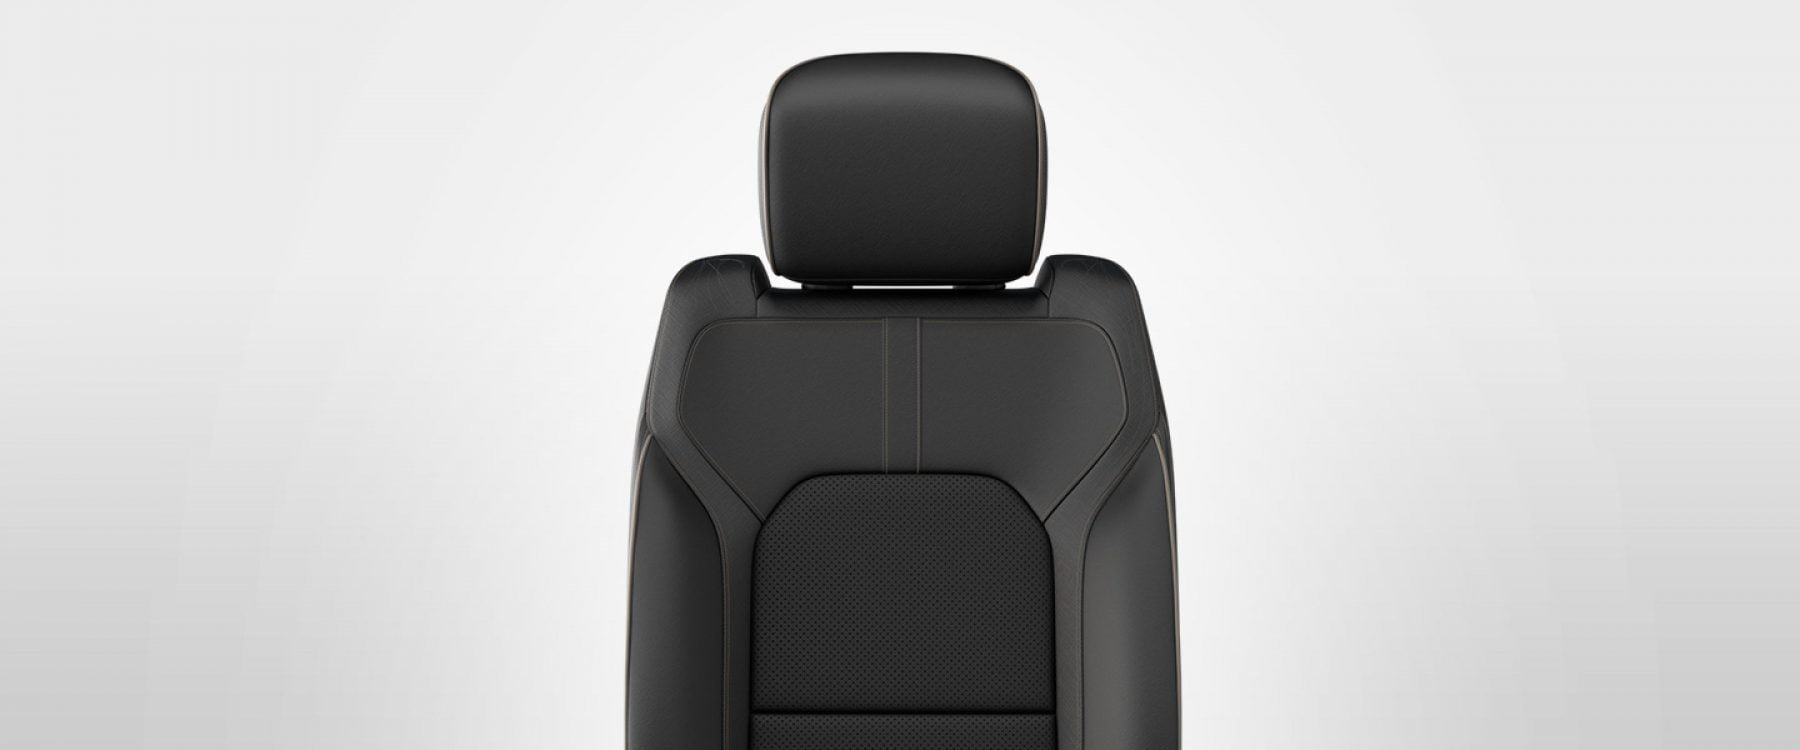 2019 Ram 1500 Interior Seat Limited Natura plus black